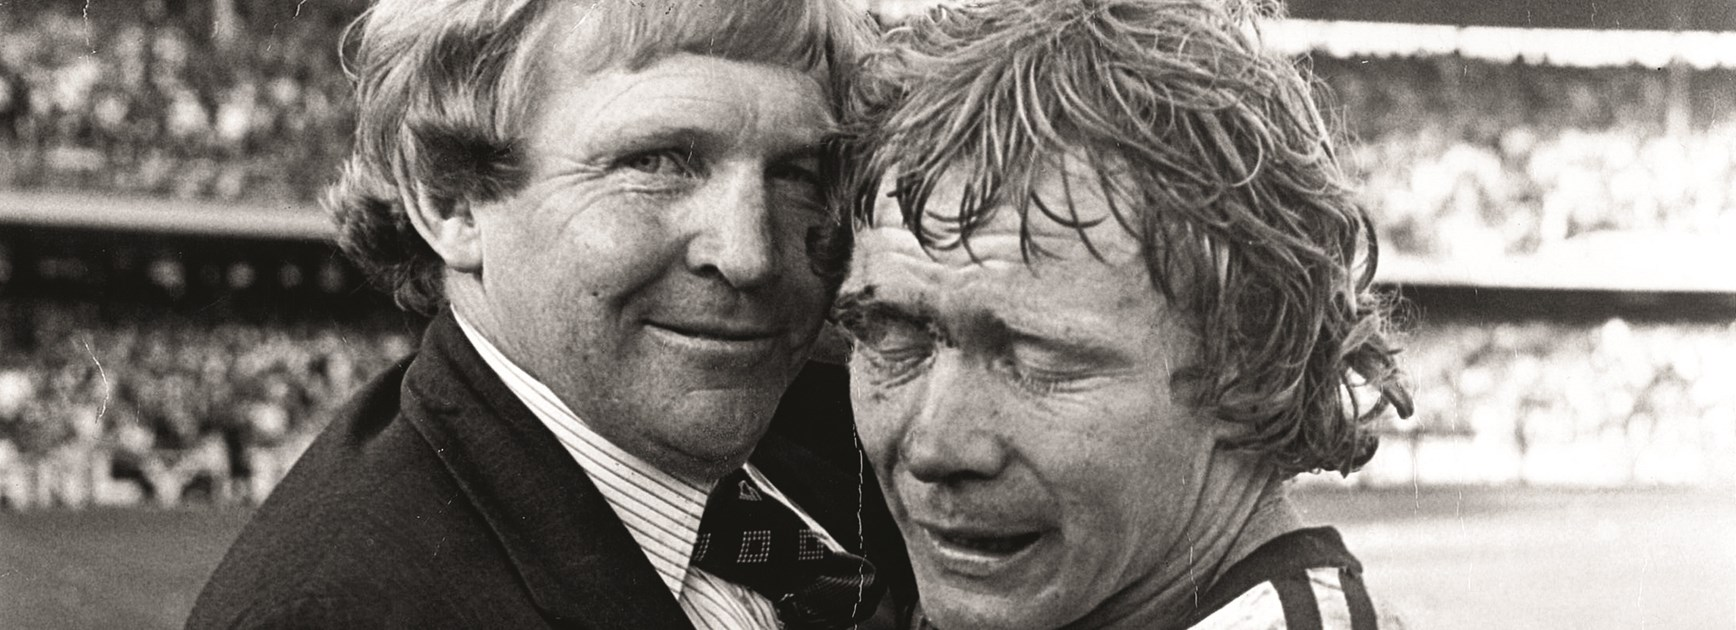 Fulton and coach Frank Stanton embrace at full-time of the 1976 Grand Final after Manly claimed their third premiership with a 13-10 win over Parramatta.